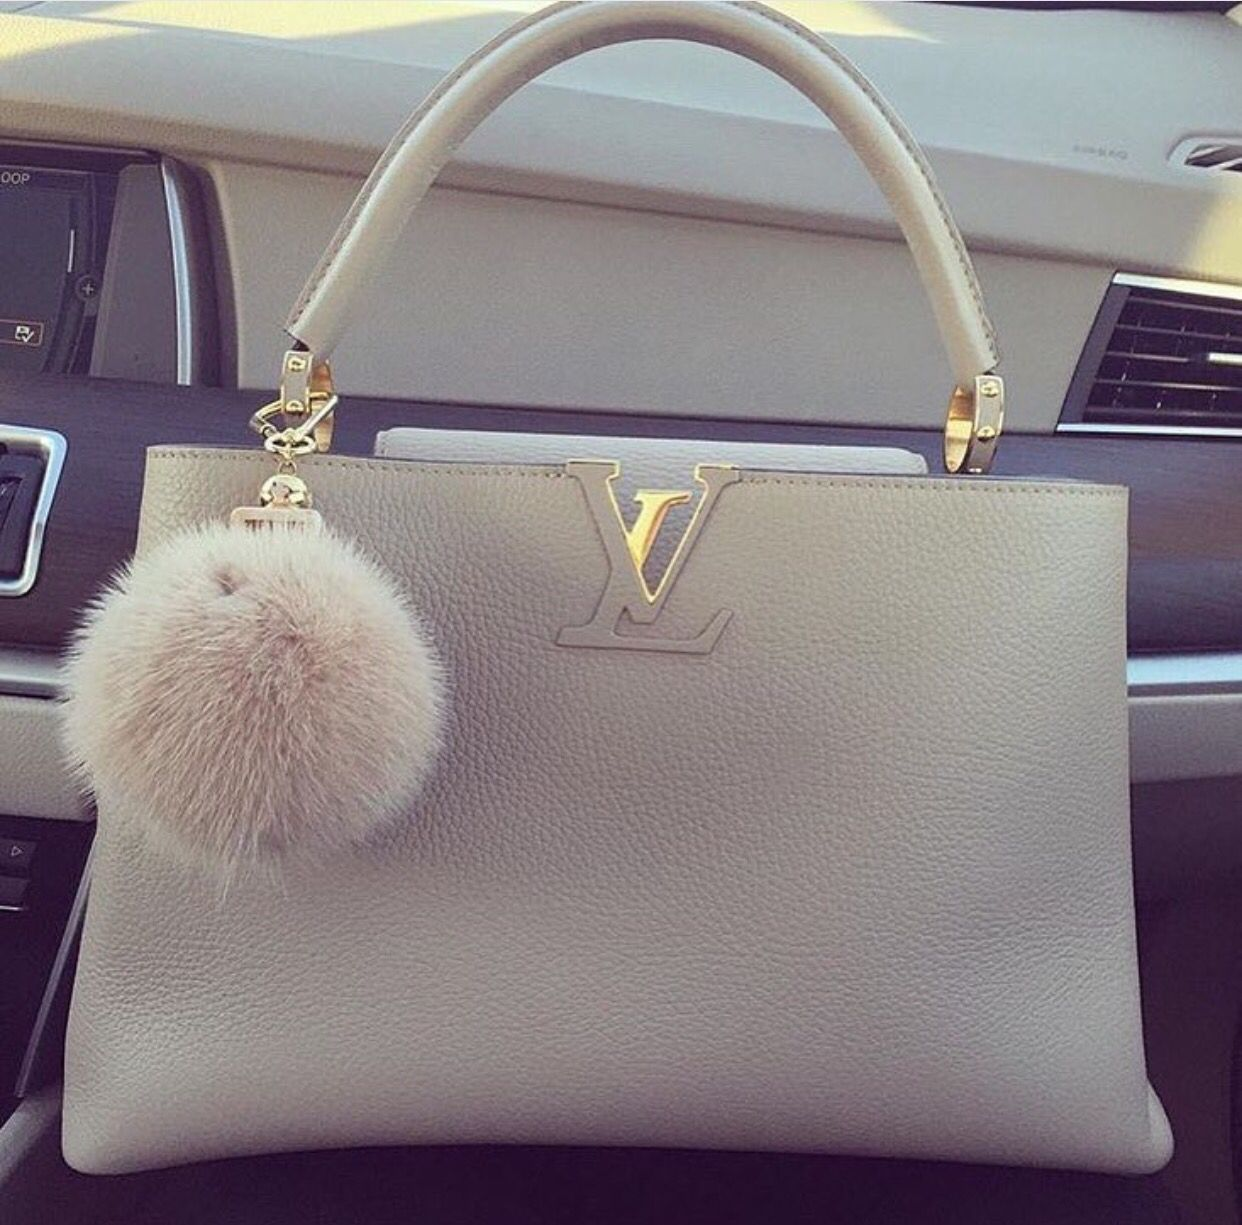 Nice Bags Vuitton Bag Luxury Bags